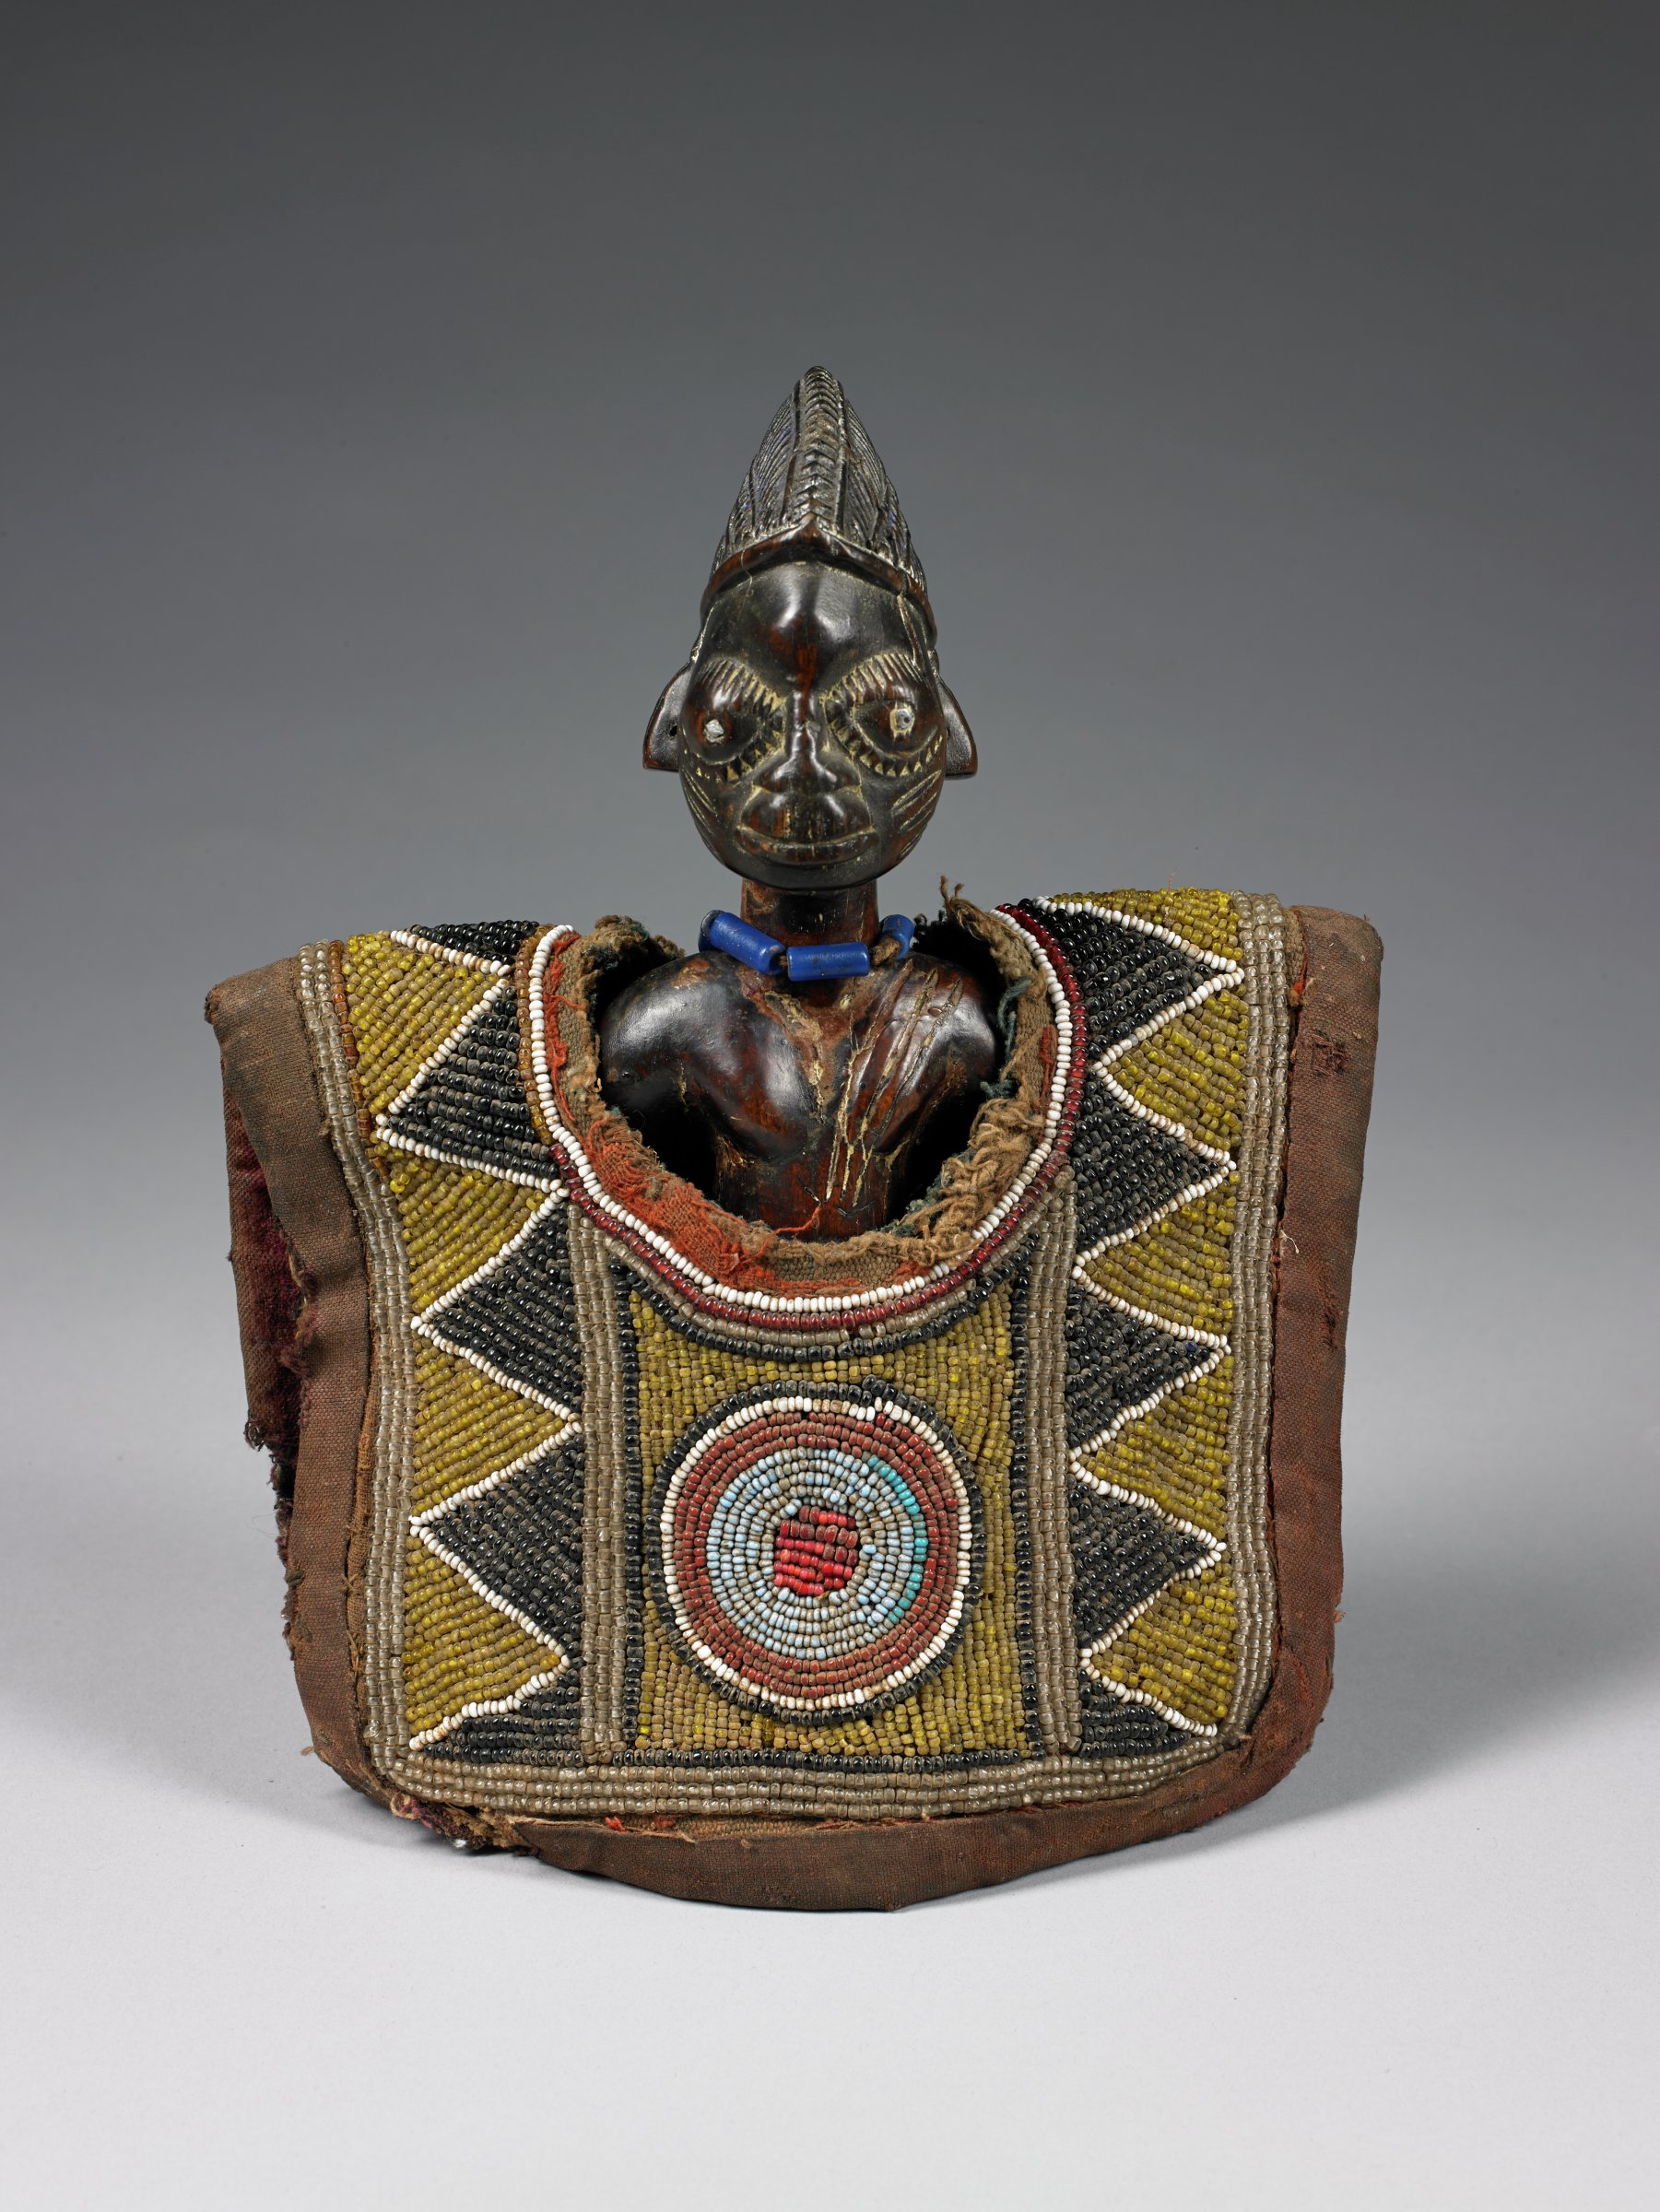 Carved wood figure with beaded vest.